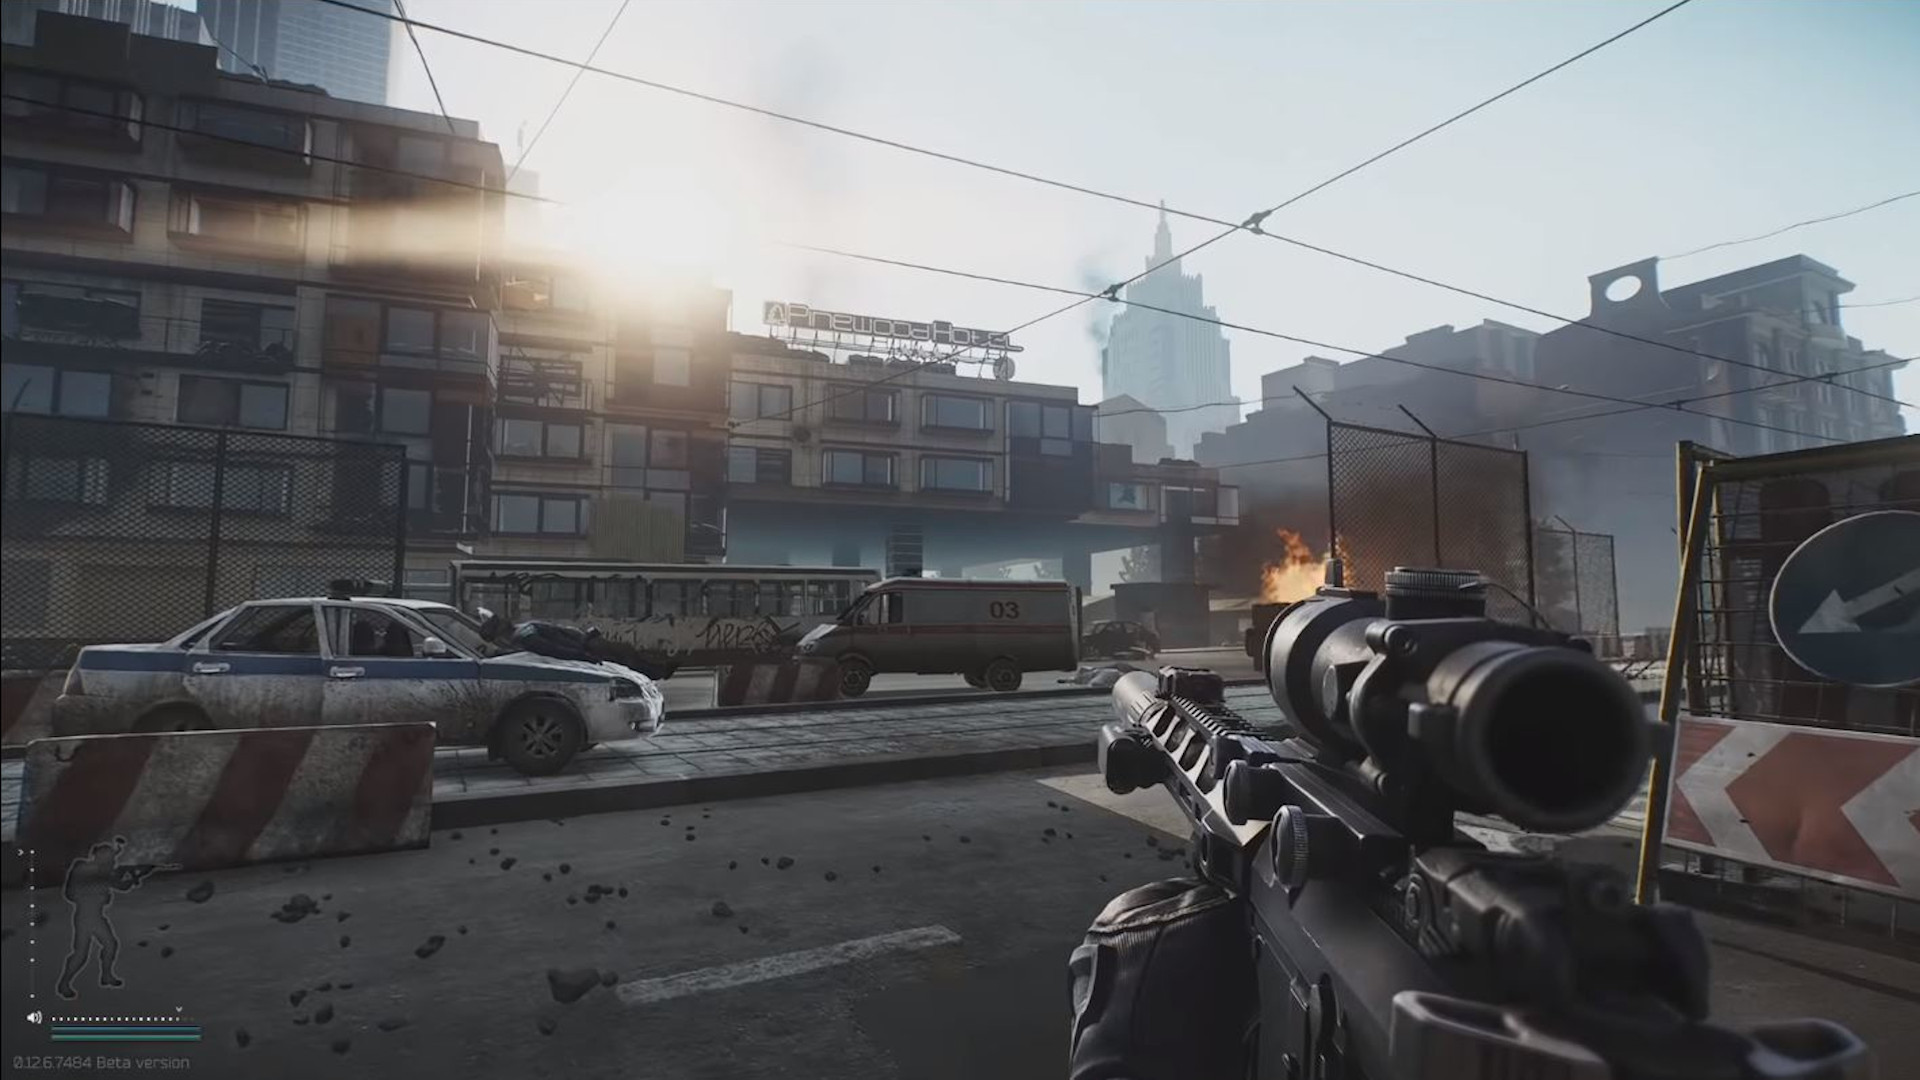 How to play Escape from Tarkov effectively? Read in detail!